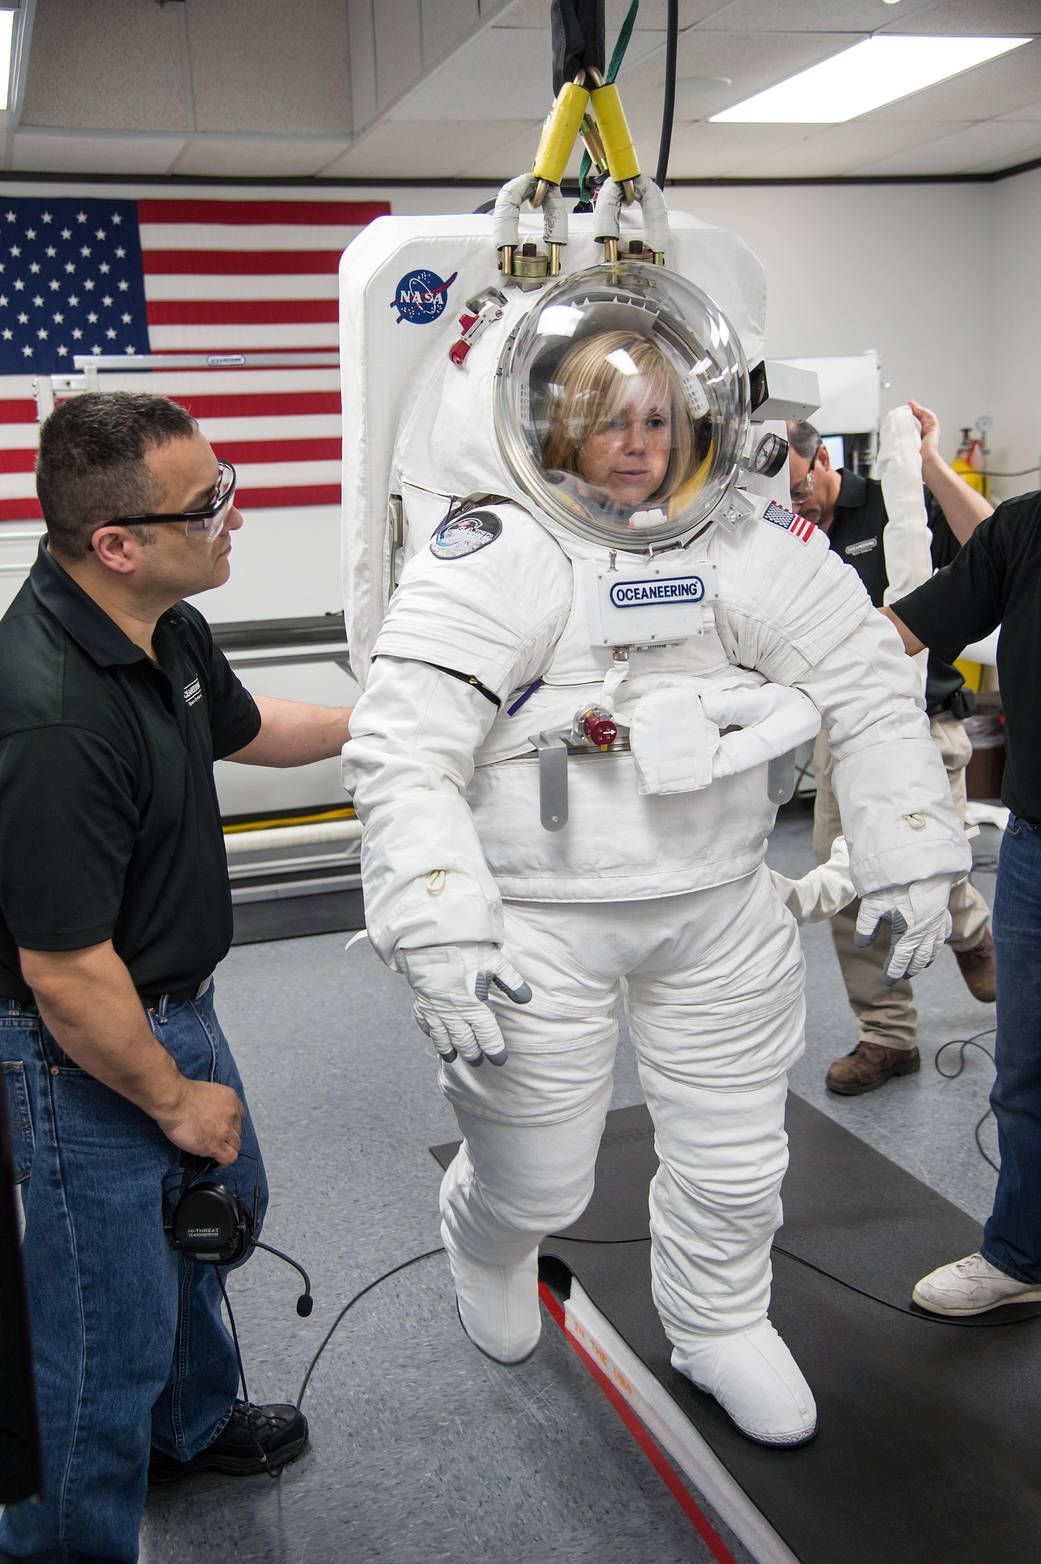 Spacesuit Gallery in 2020 Space, astronomy, Astronaut